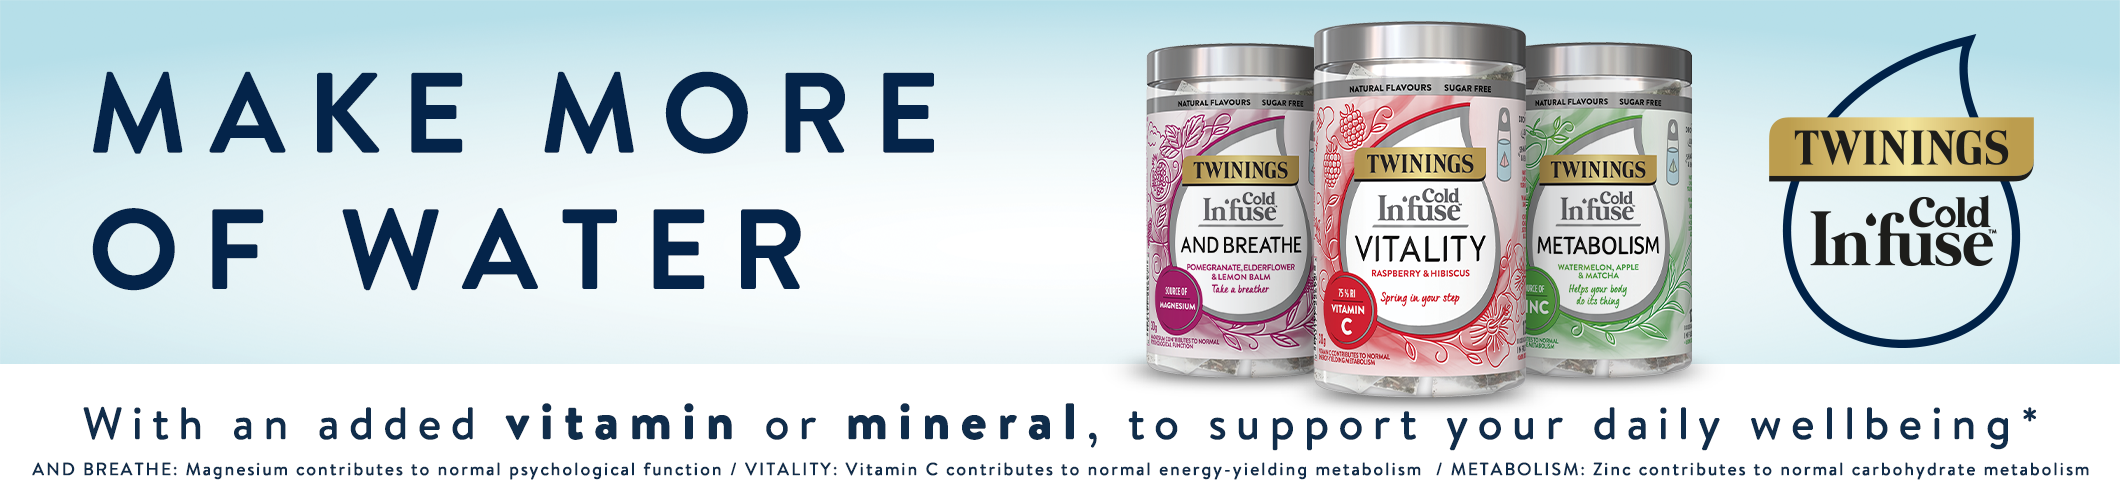 Twinings Cold Infuse - Make More of Water